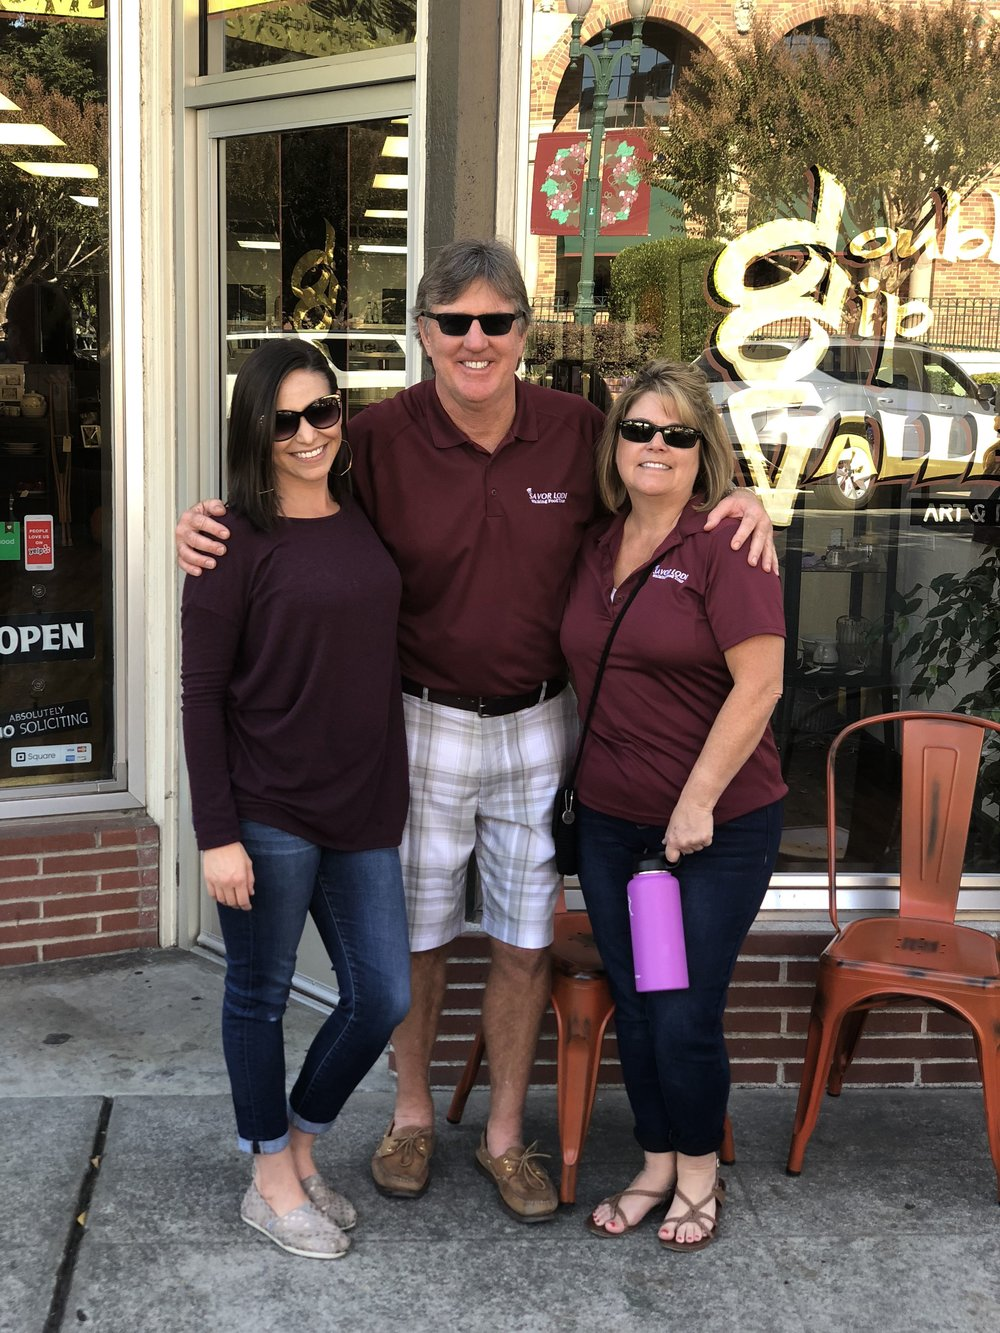 Scott & Juliette Fyffe, Savor Lodi Owners, and Jamie, Lodi Live Owner